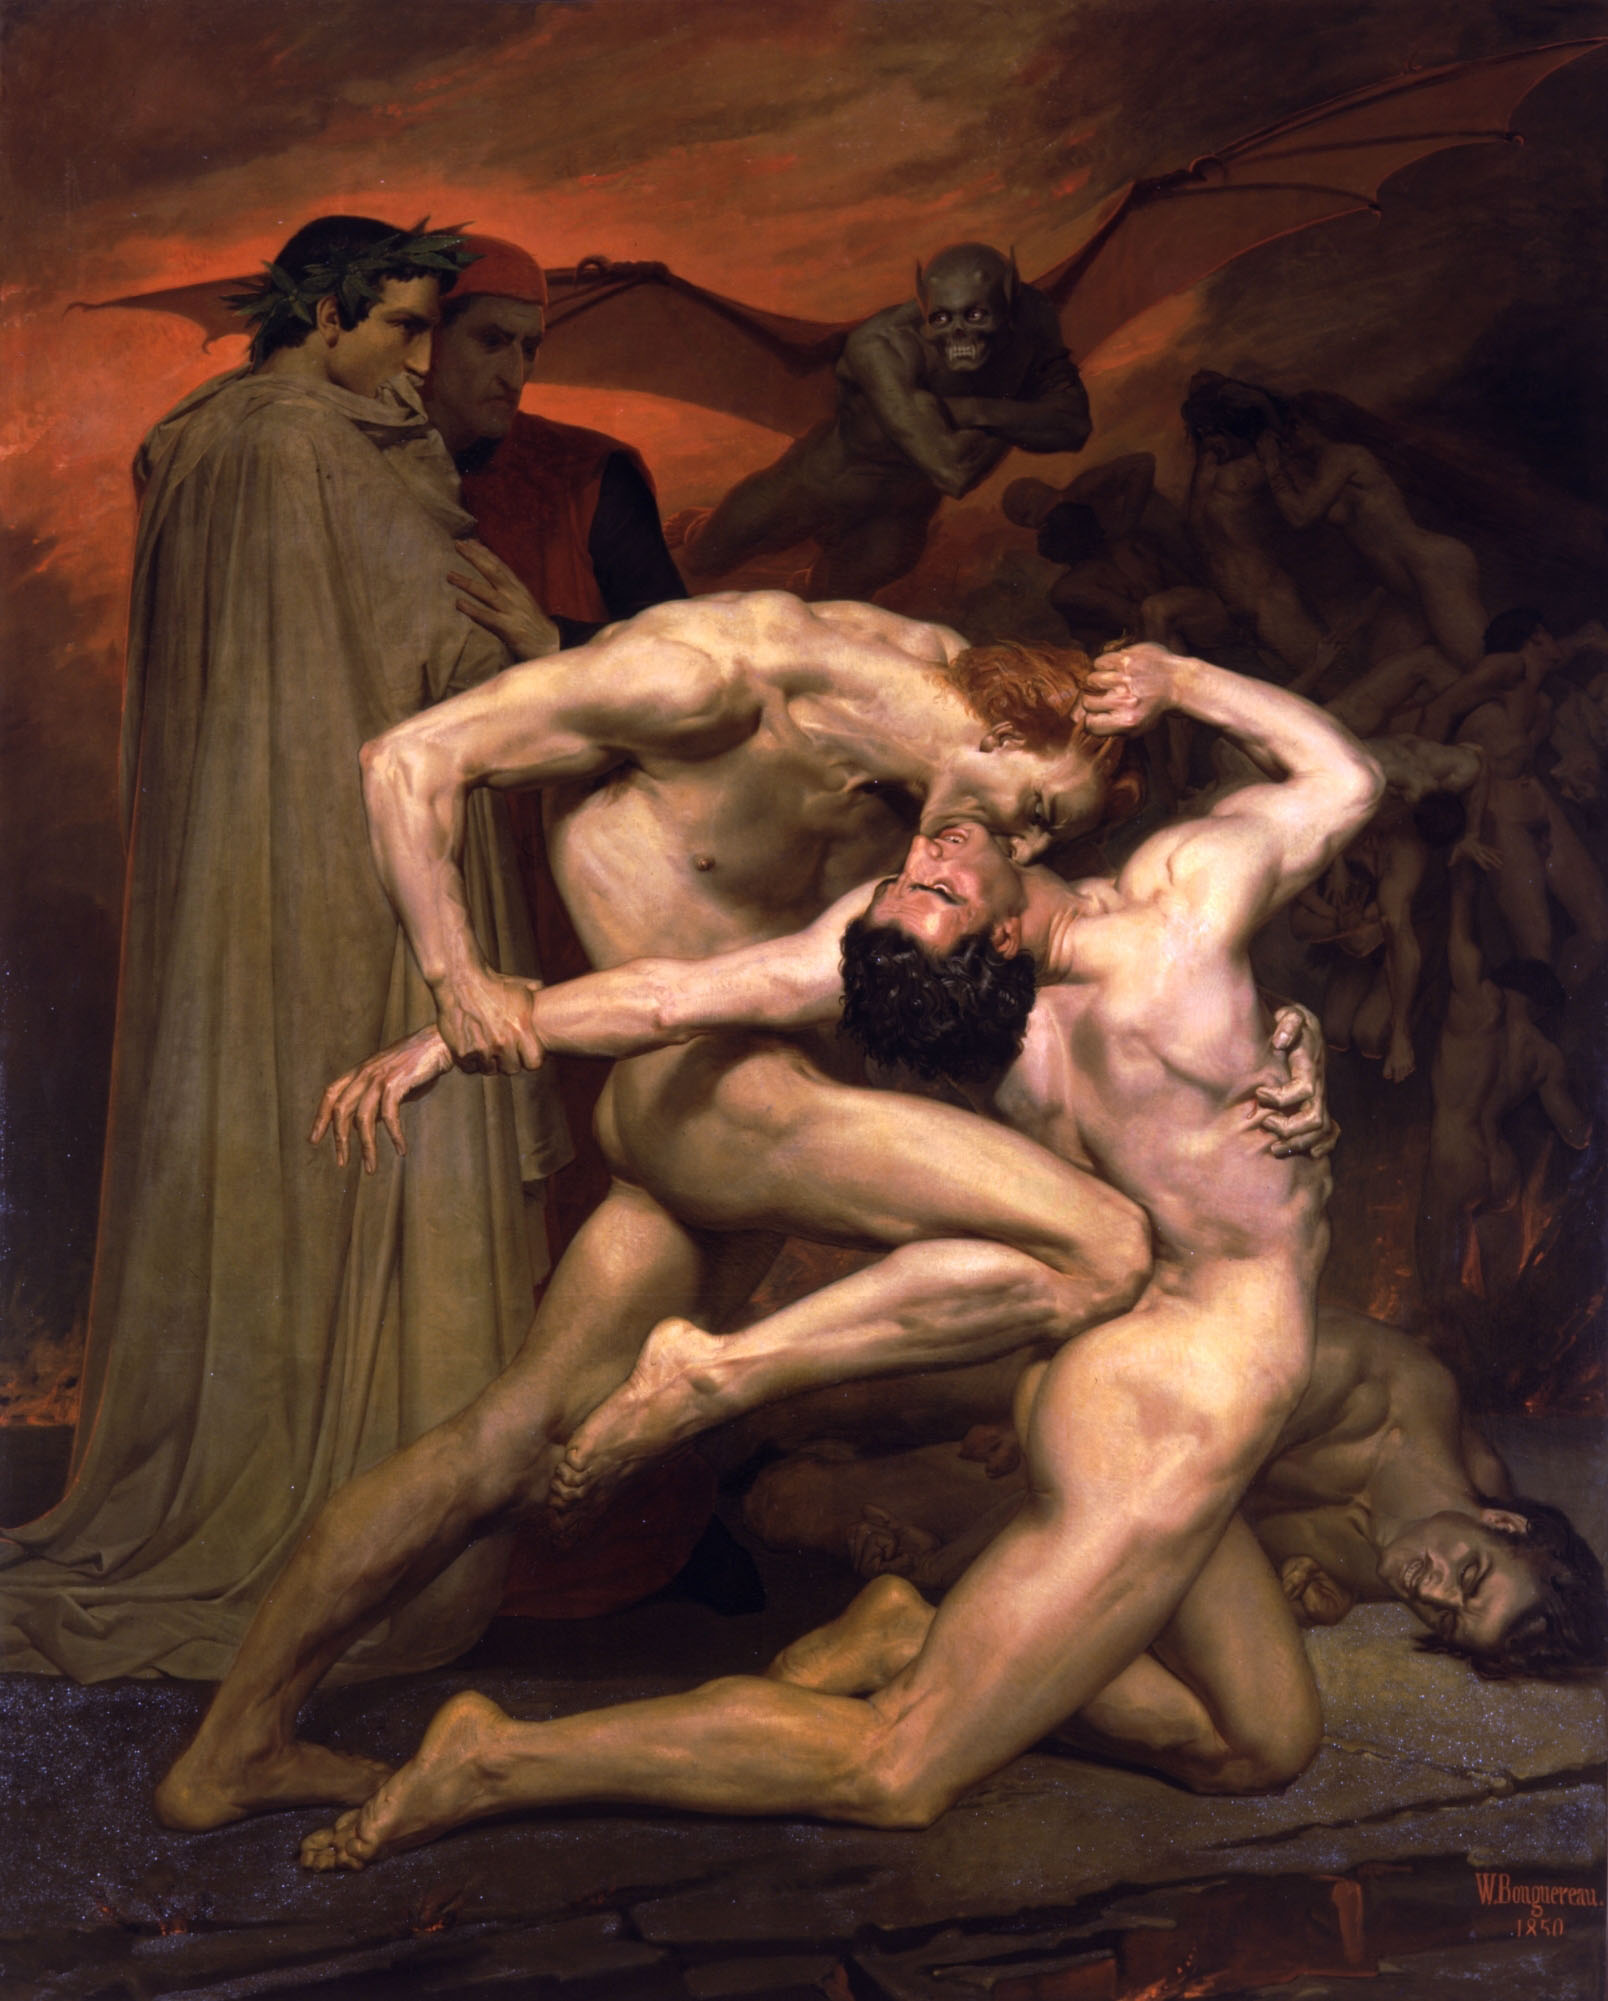 [imagetag] http://upload.wikimedia.org/wikipedia/commons/7/70/William-Adolphe_Bouguereau_%281825-1905%29_-_Dante_And_Virgil_In_Hell_%281850%29.jpg